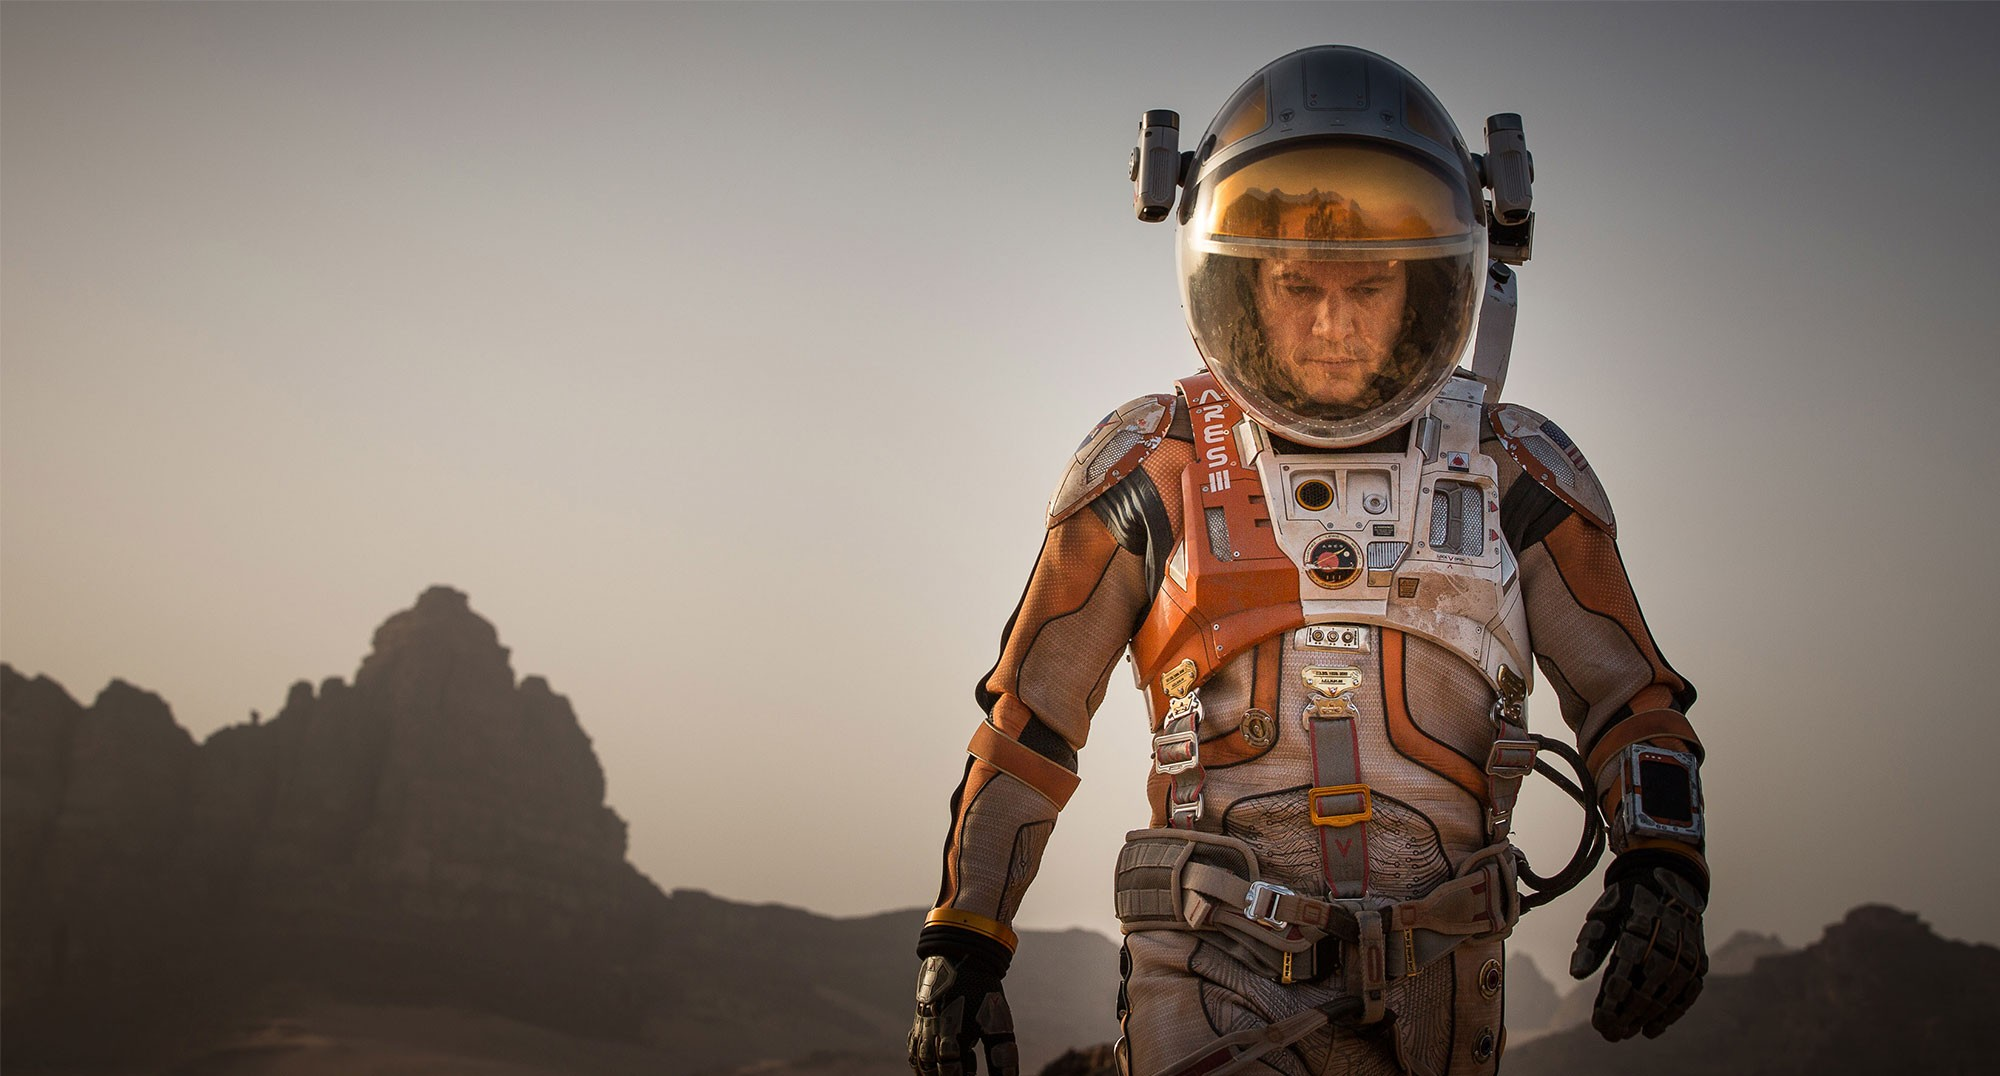 'The Martian' to premiere at Toronto International Film Festival